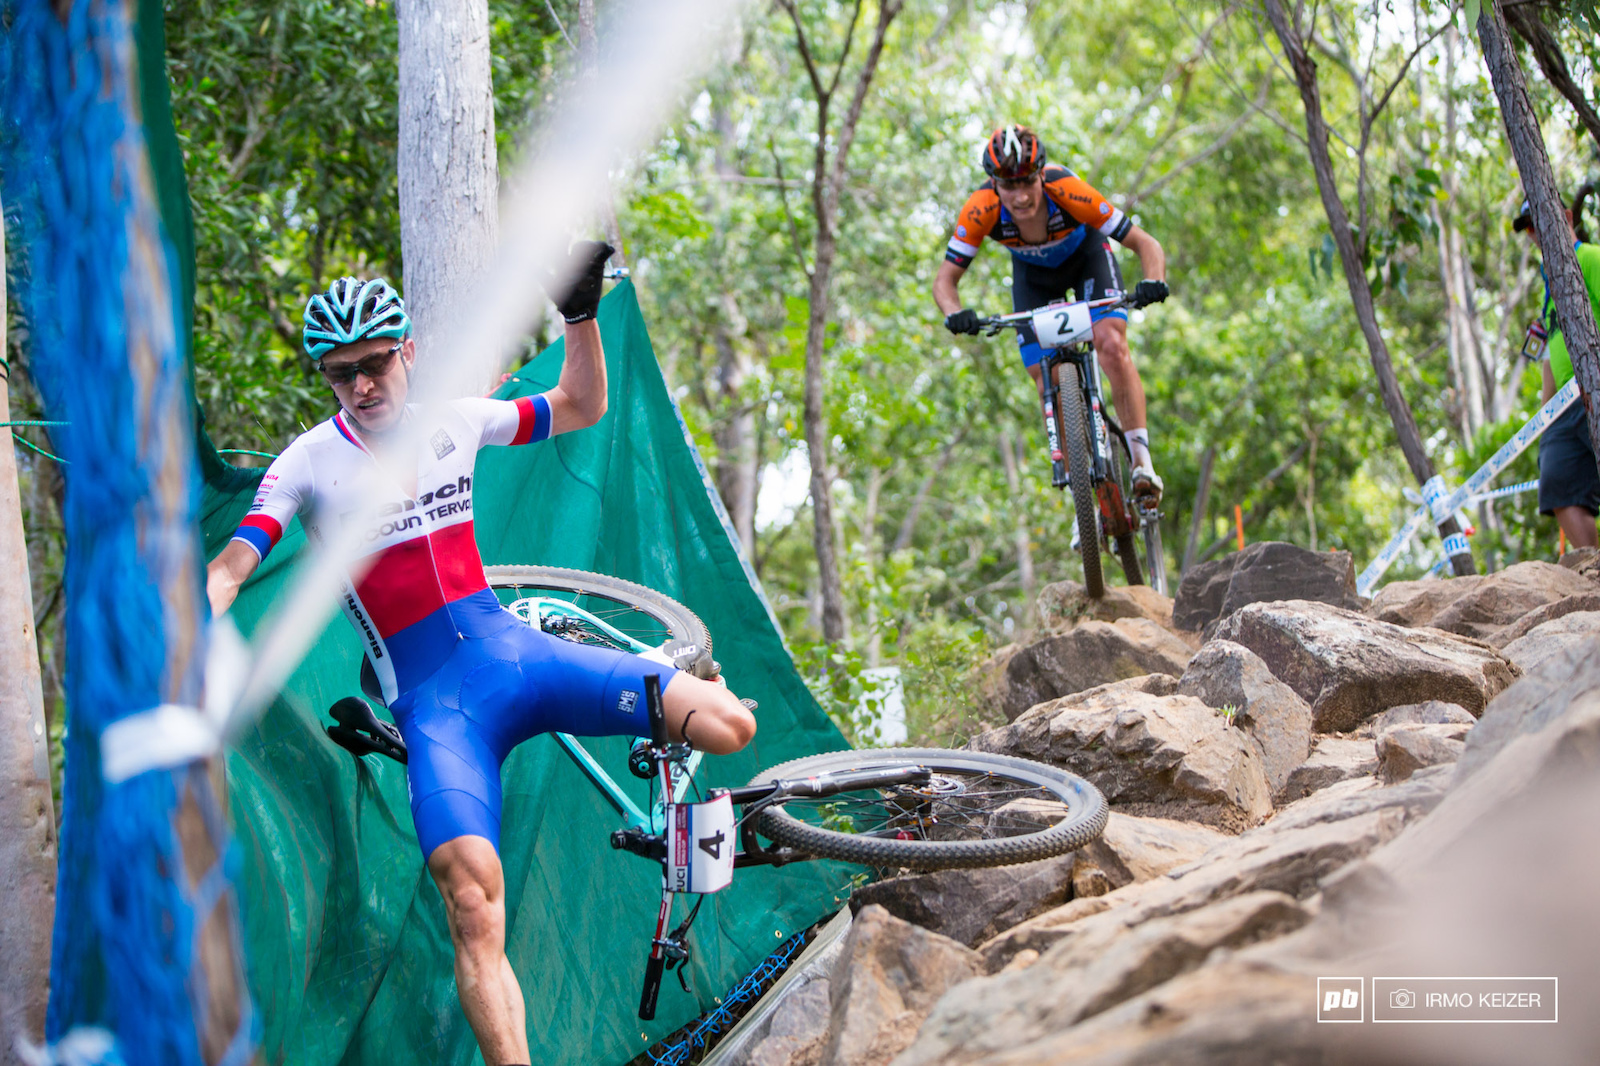 Jan Vastl crashes in the rockgarden. The course would claim multiple victims during the day.